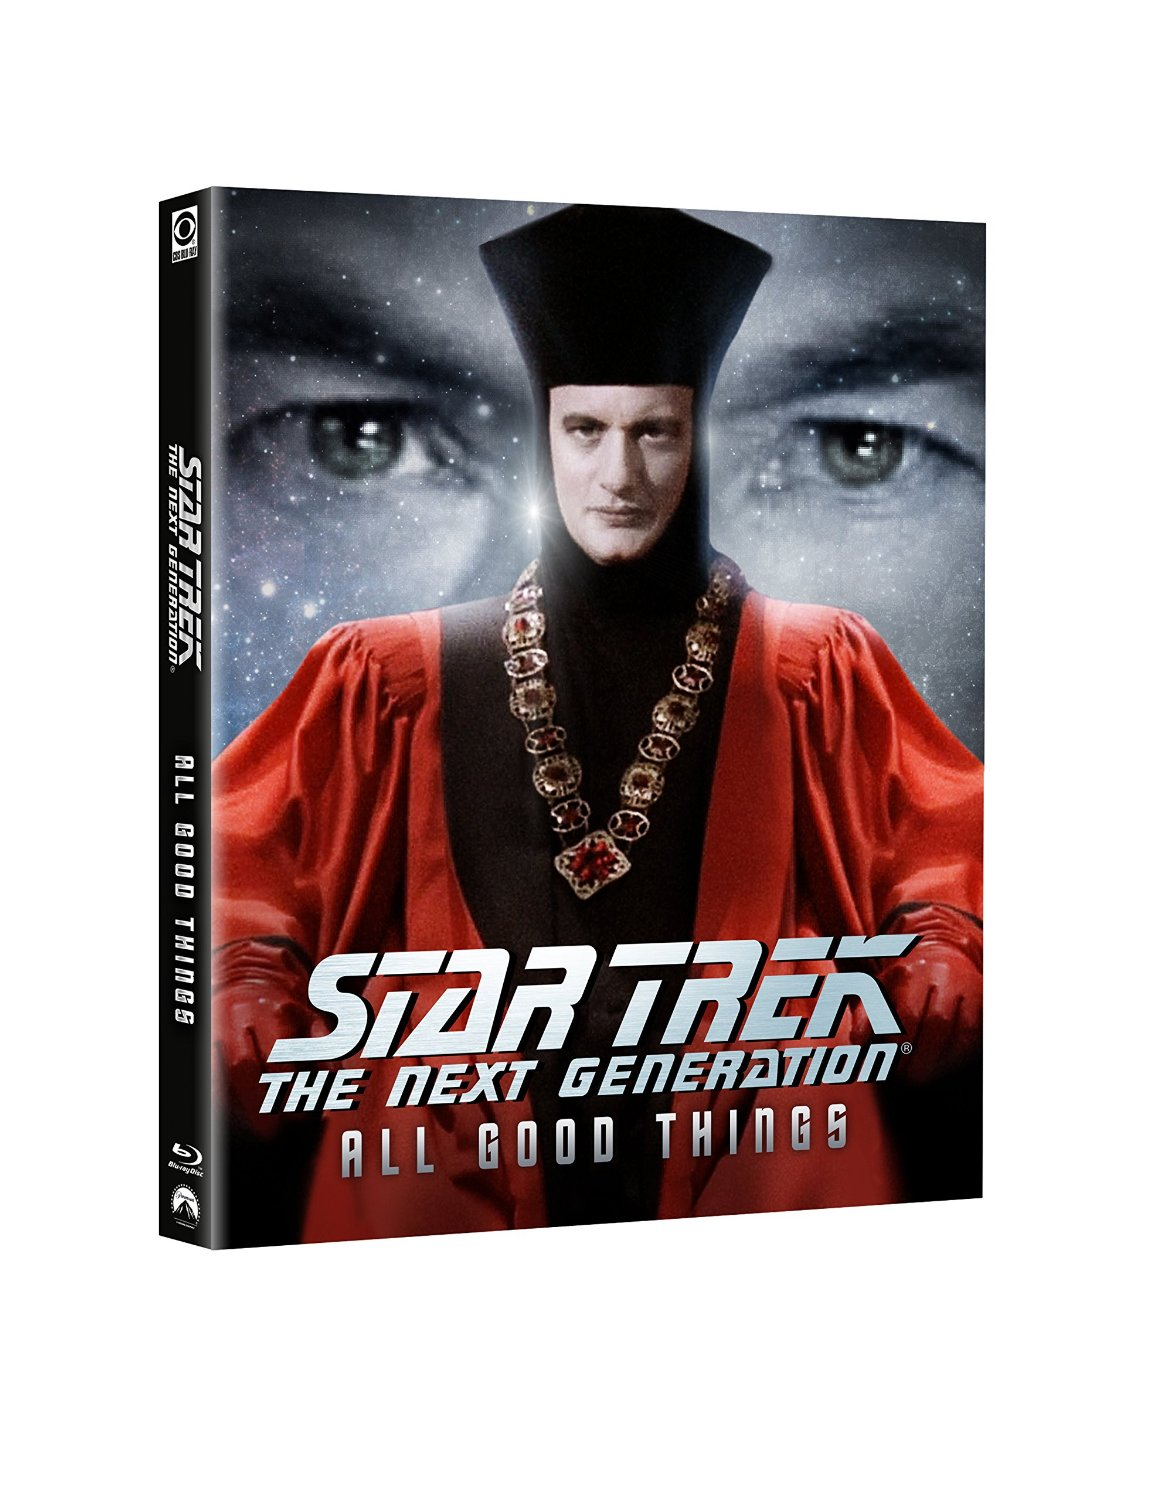 Star Trek TNG All Good Things Blu-ray cover Star Trek TNG Season 7 Blu-Ray Trailer